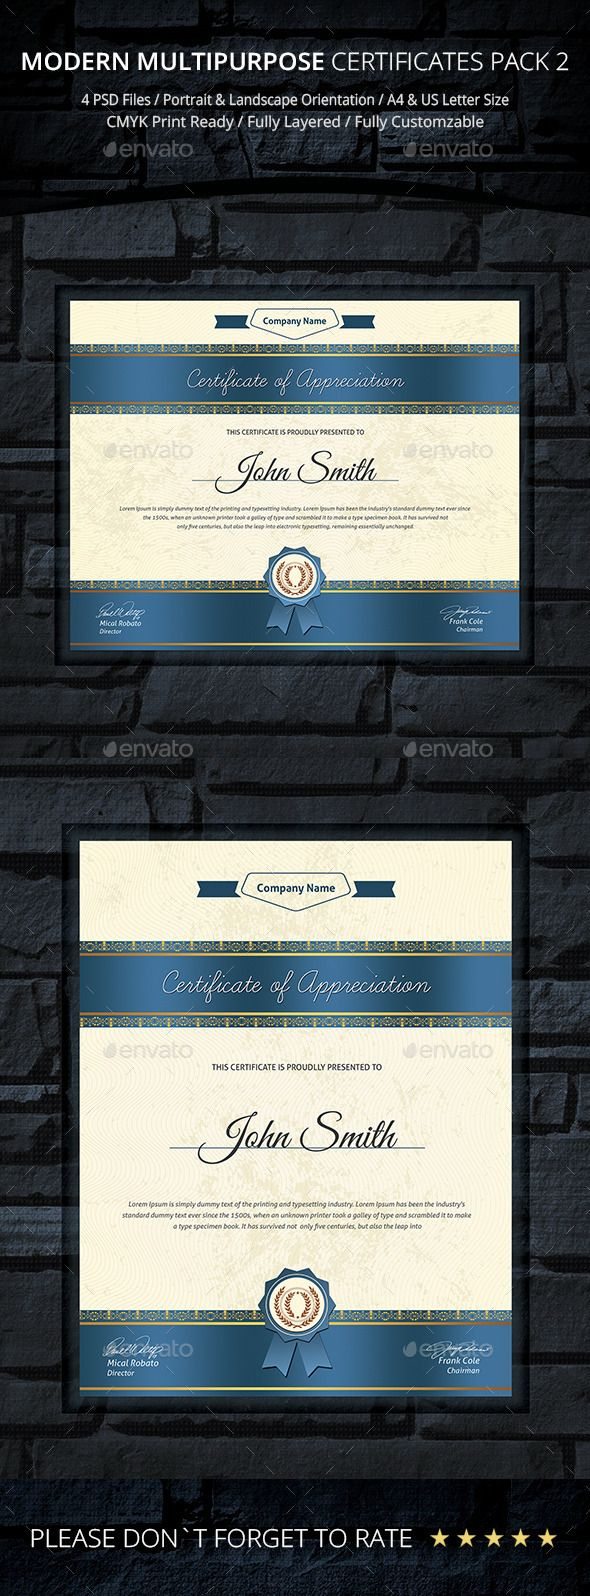 31 best psd templates certificate design images on pinterest psd certificate infographic templatespsd yadclub Choice Image